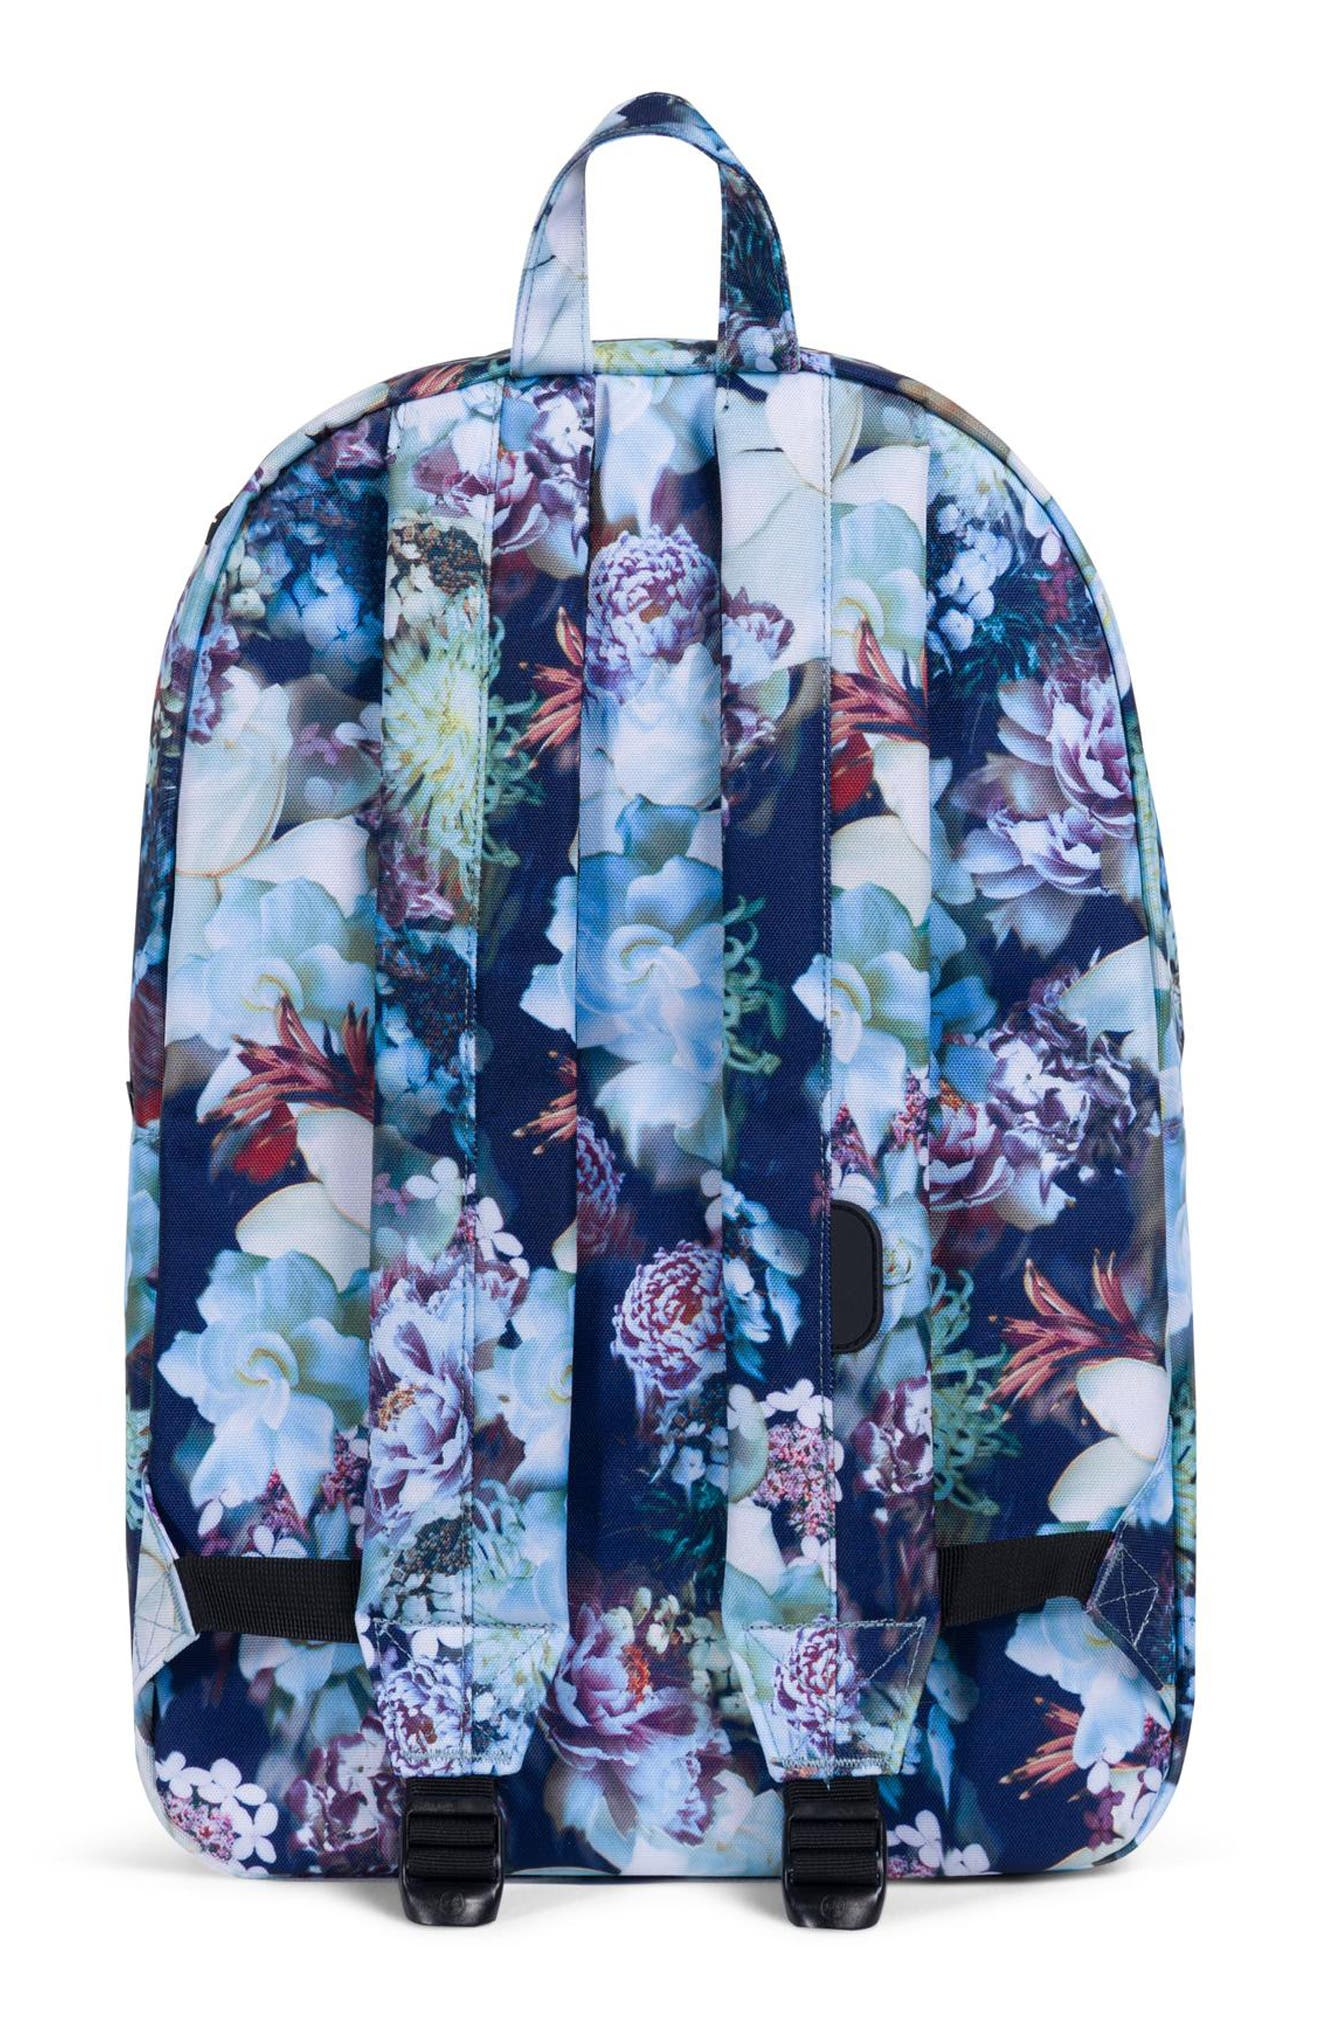 Heritage Hoffman Backpack,                             Alternate thumbnail 2, color,                             WINTER FLORAL